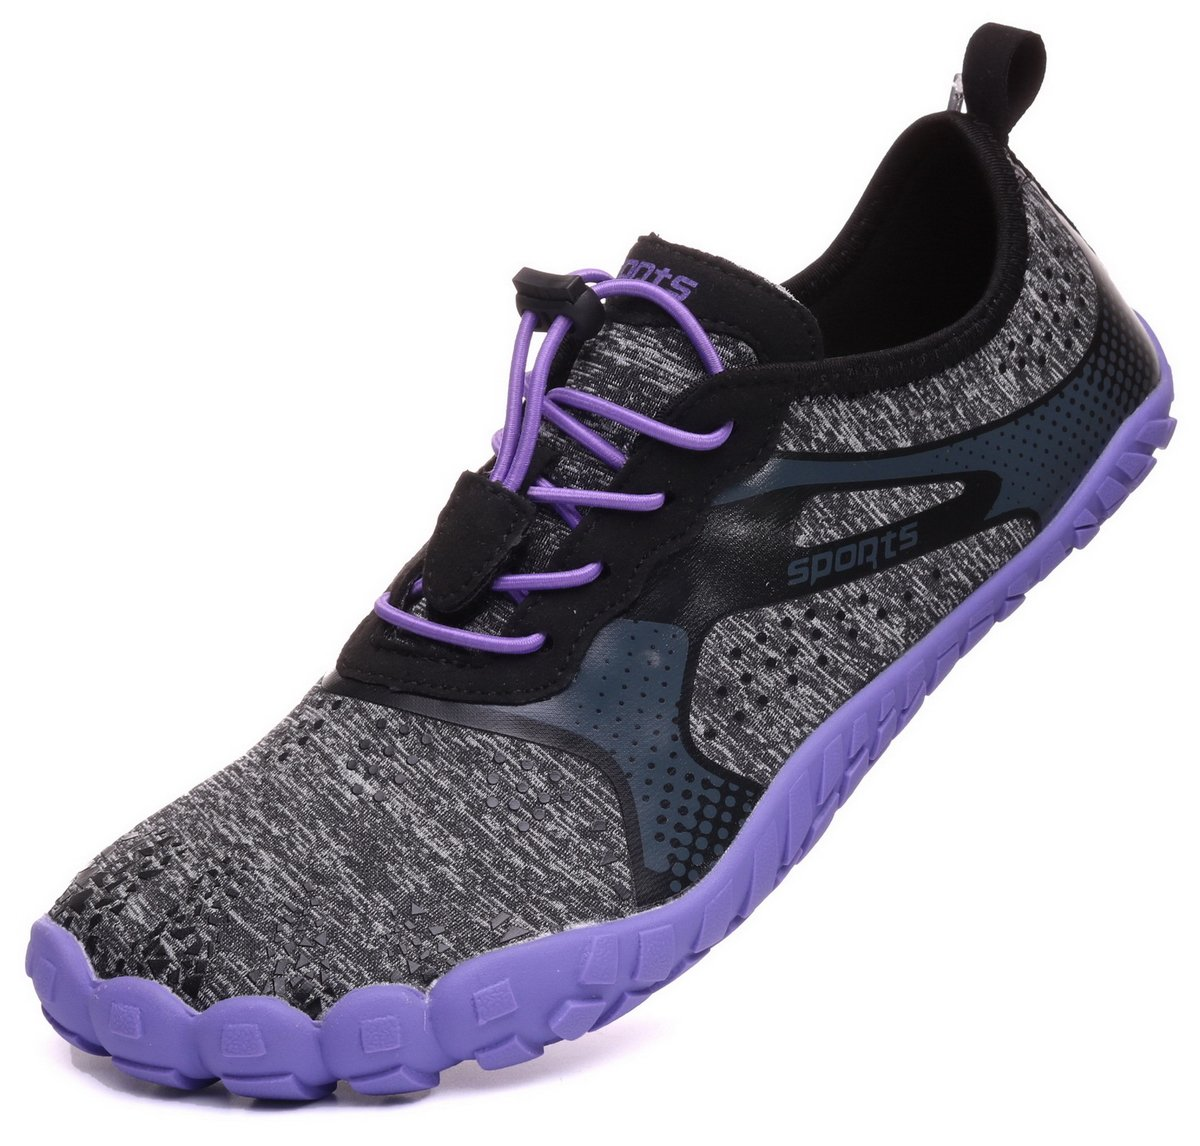 WHITIN Unisex Barefoot Shoes for Water Activities and Walking Jogging B07DBCXQYR 7.5 US Women's / 6 US Men's|Purple